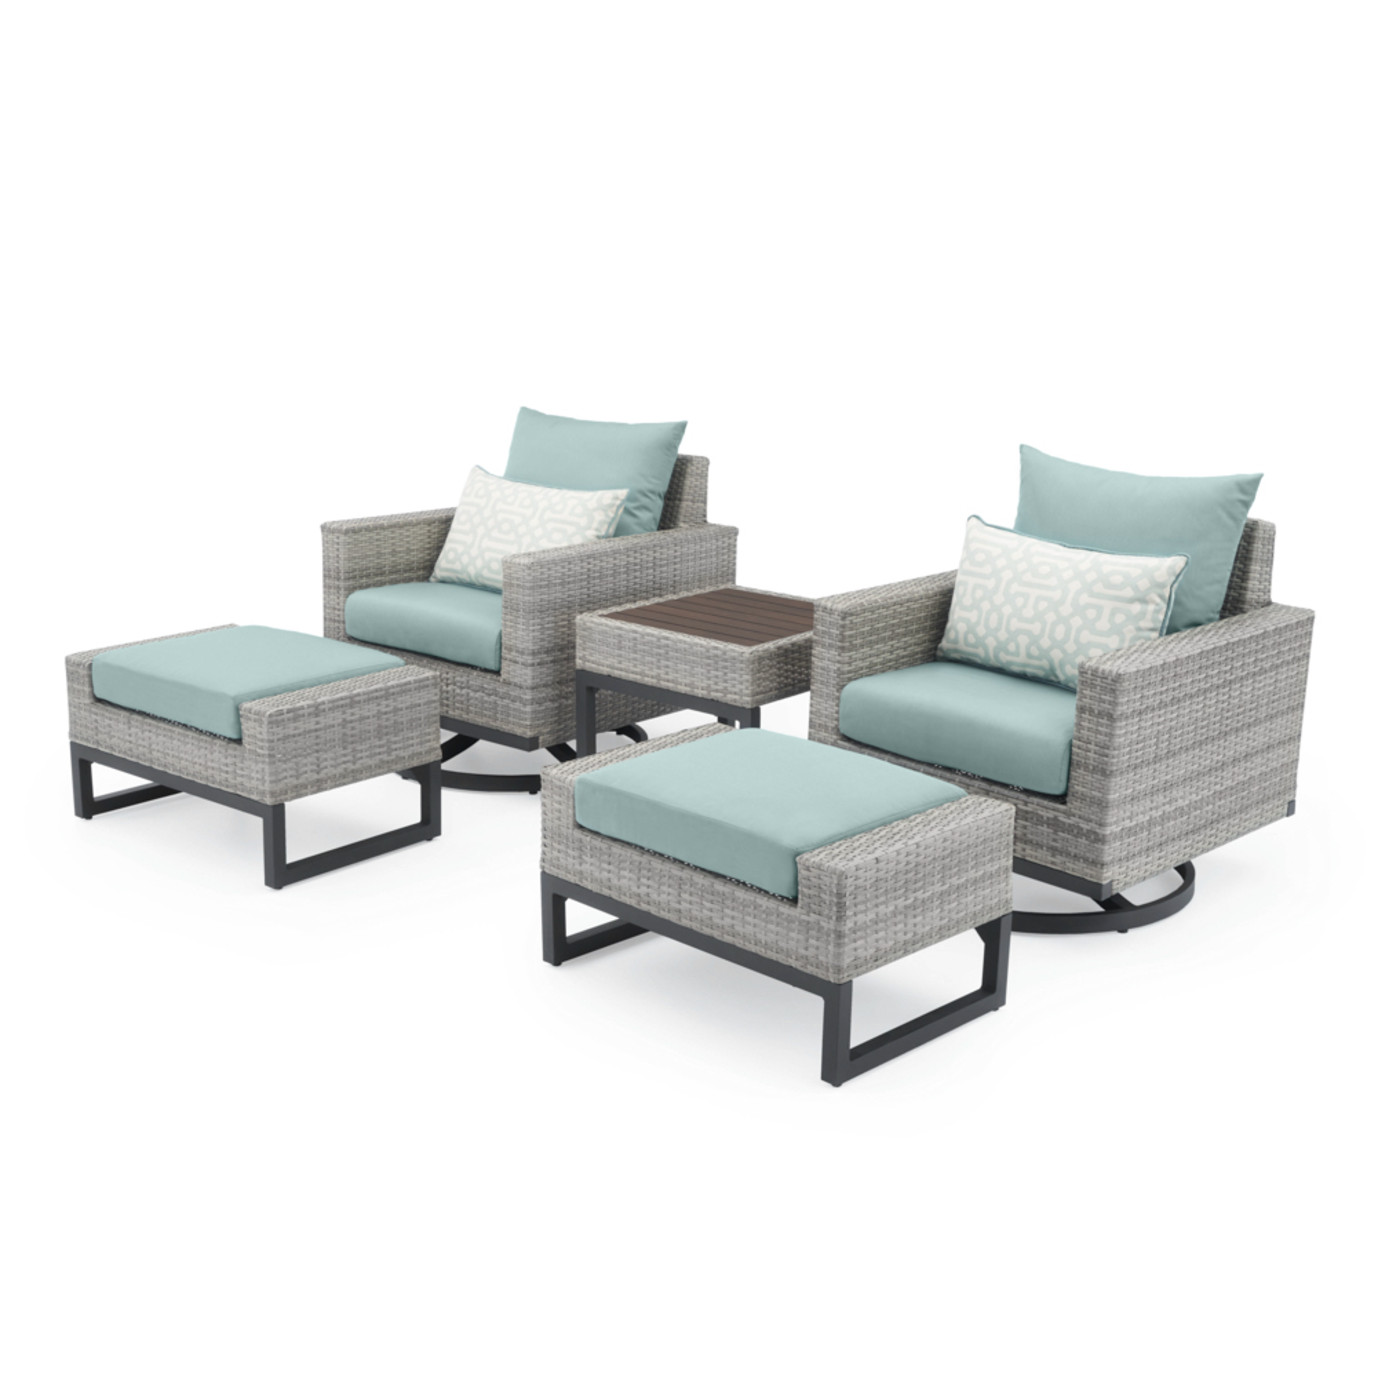 Milo™ Gray 5 Piece Motion Club Set - Spa Blue